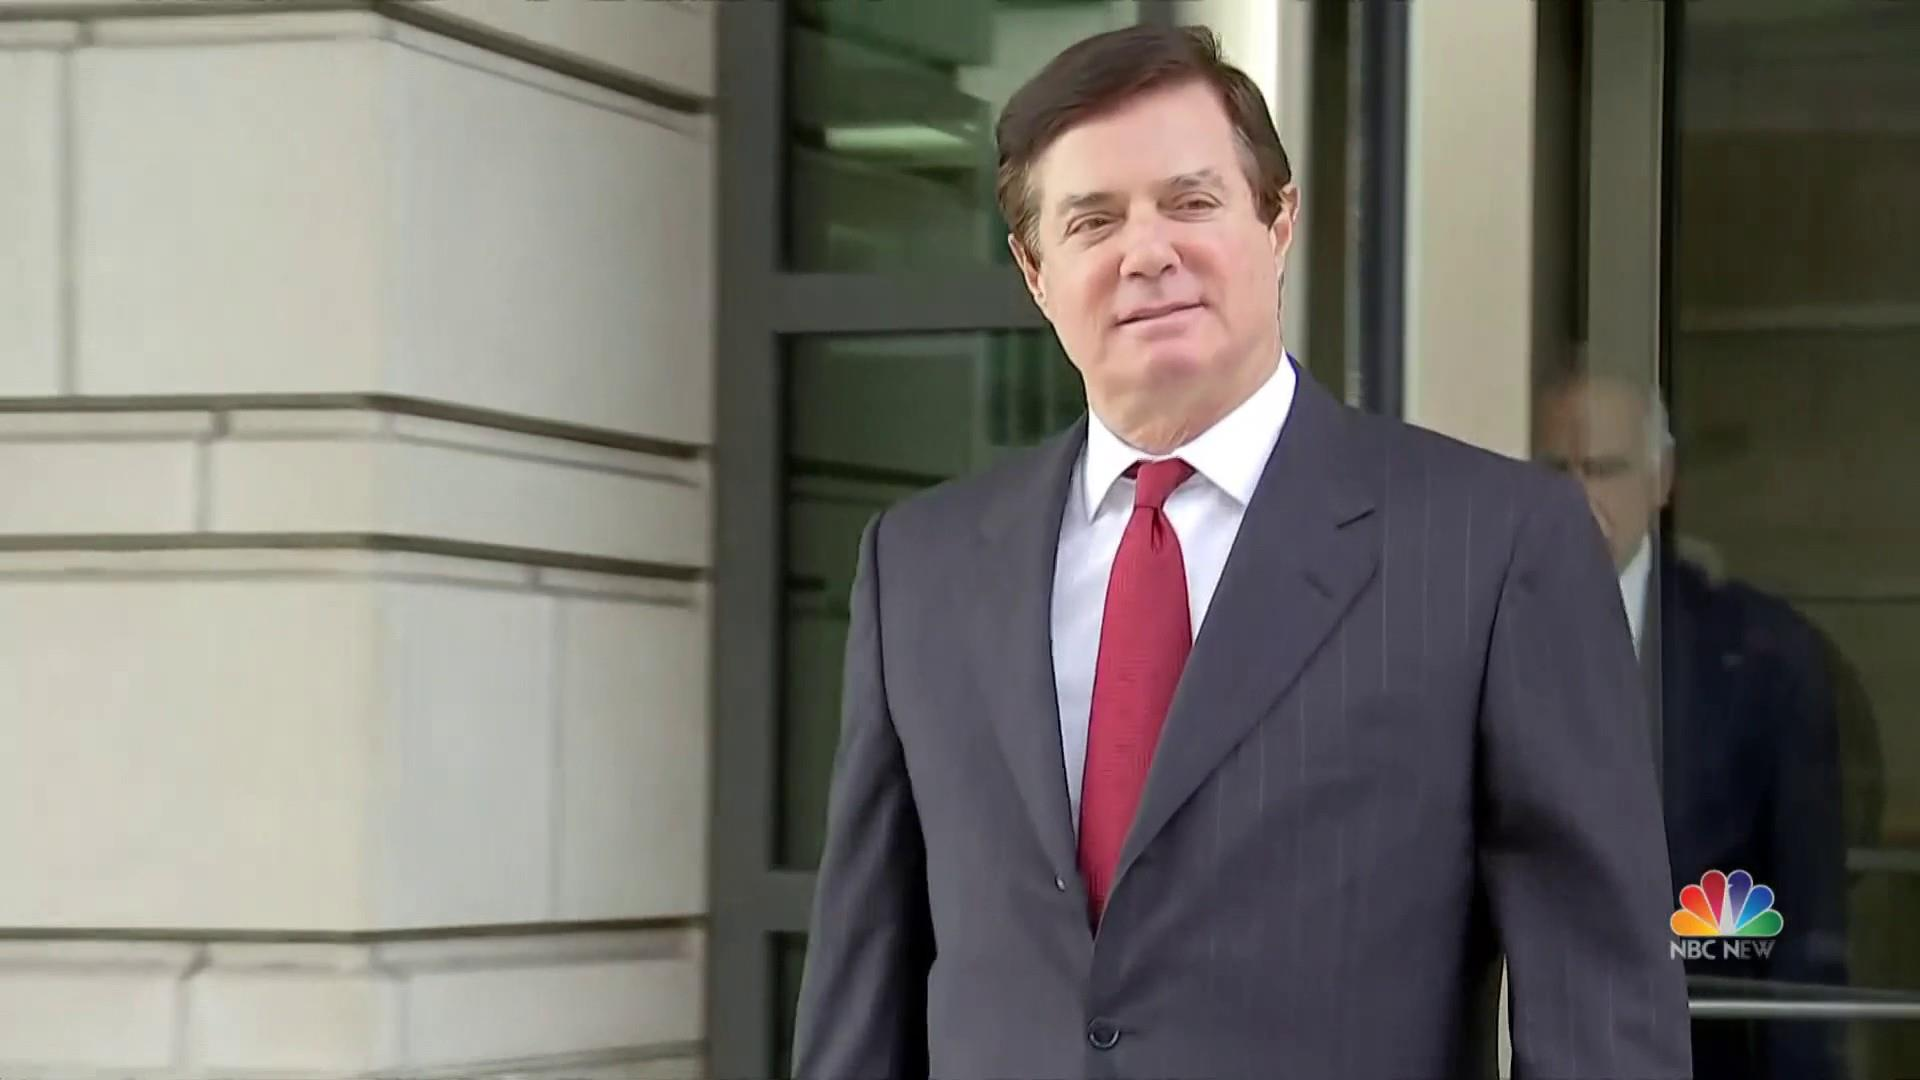 Paul Manafort knows some of Trump's deepest secrets  And now